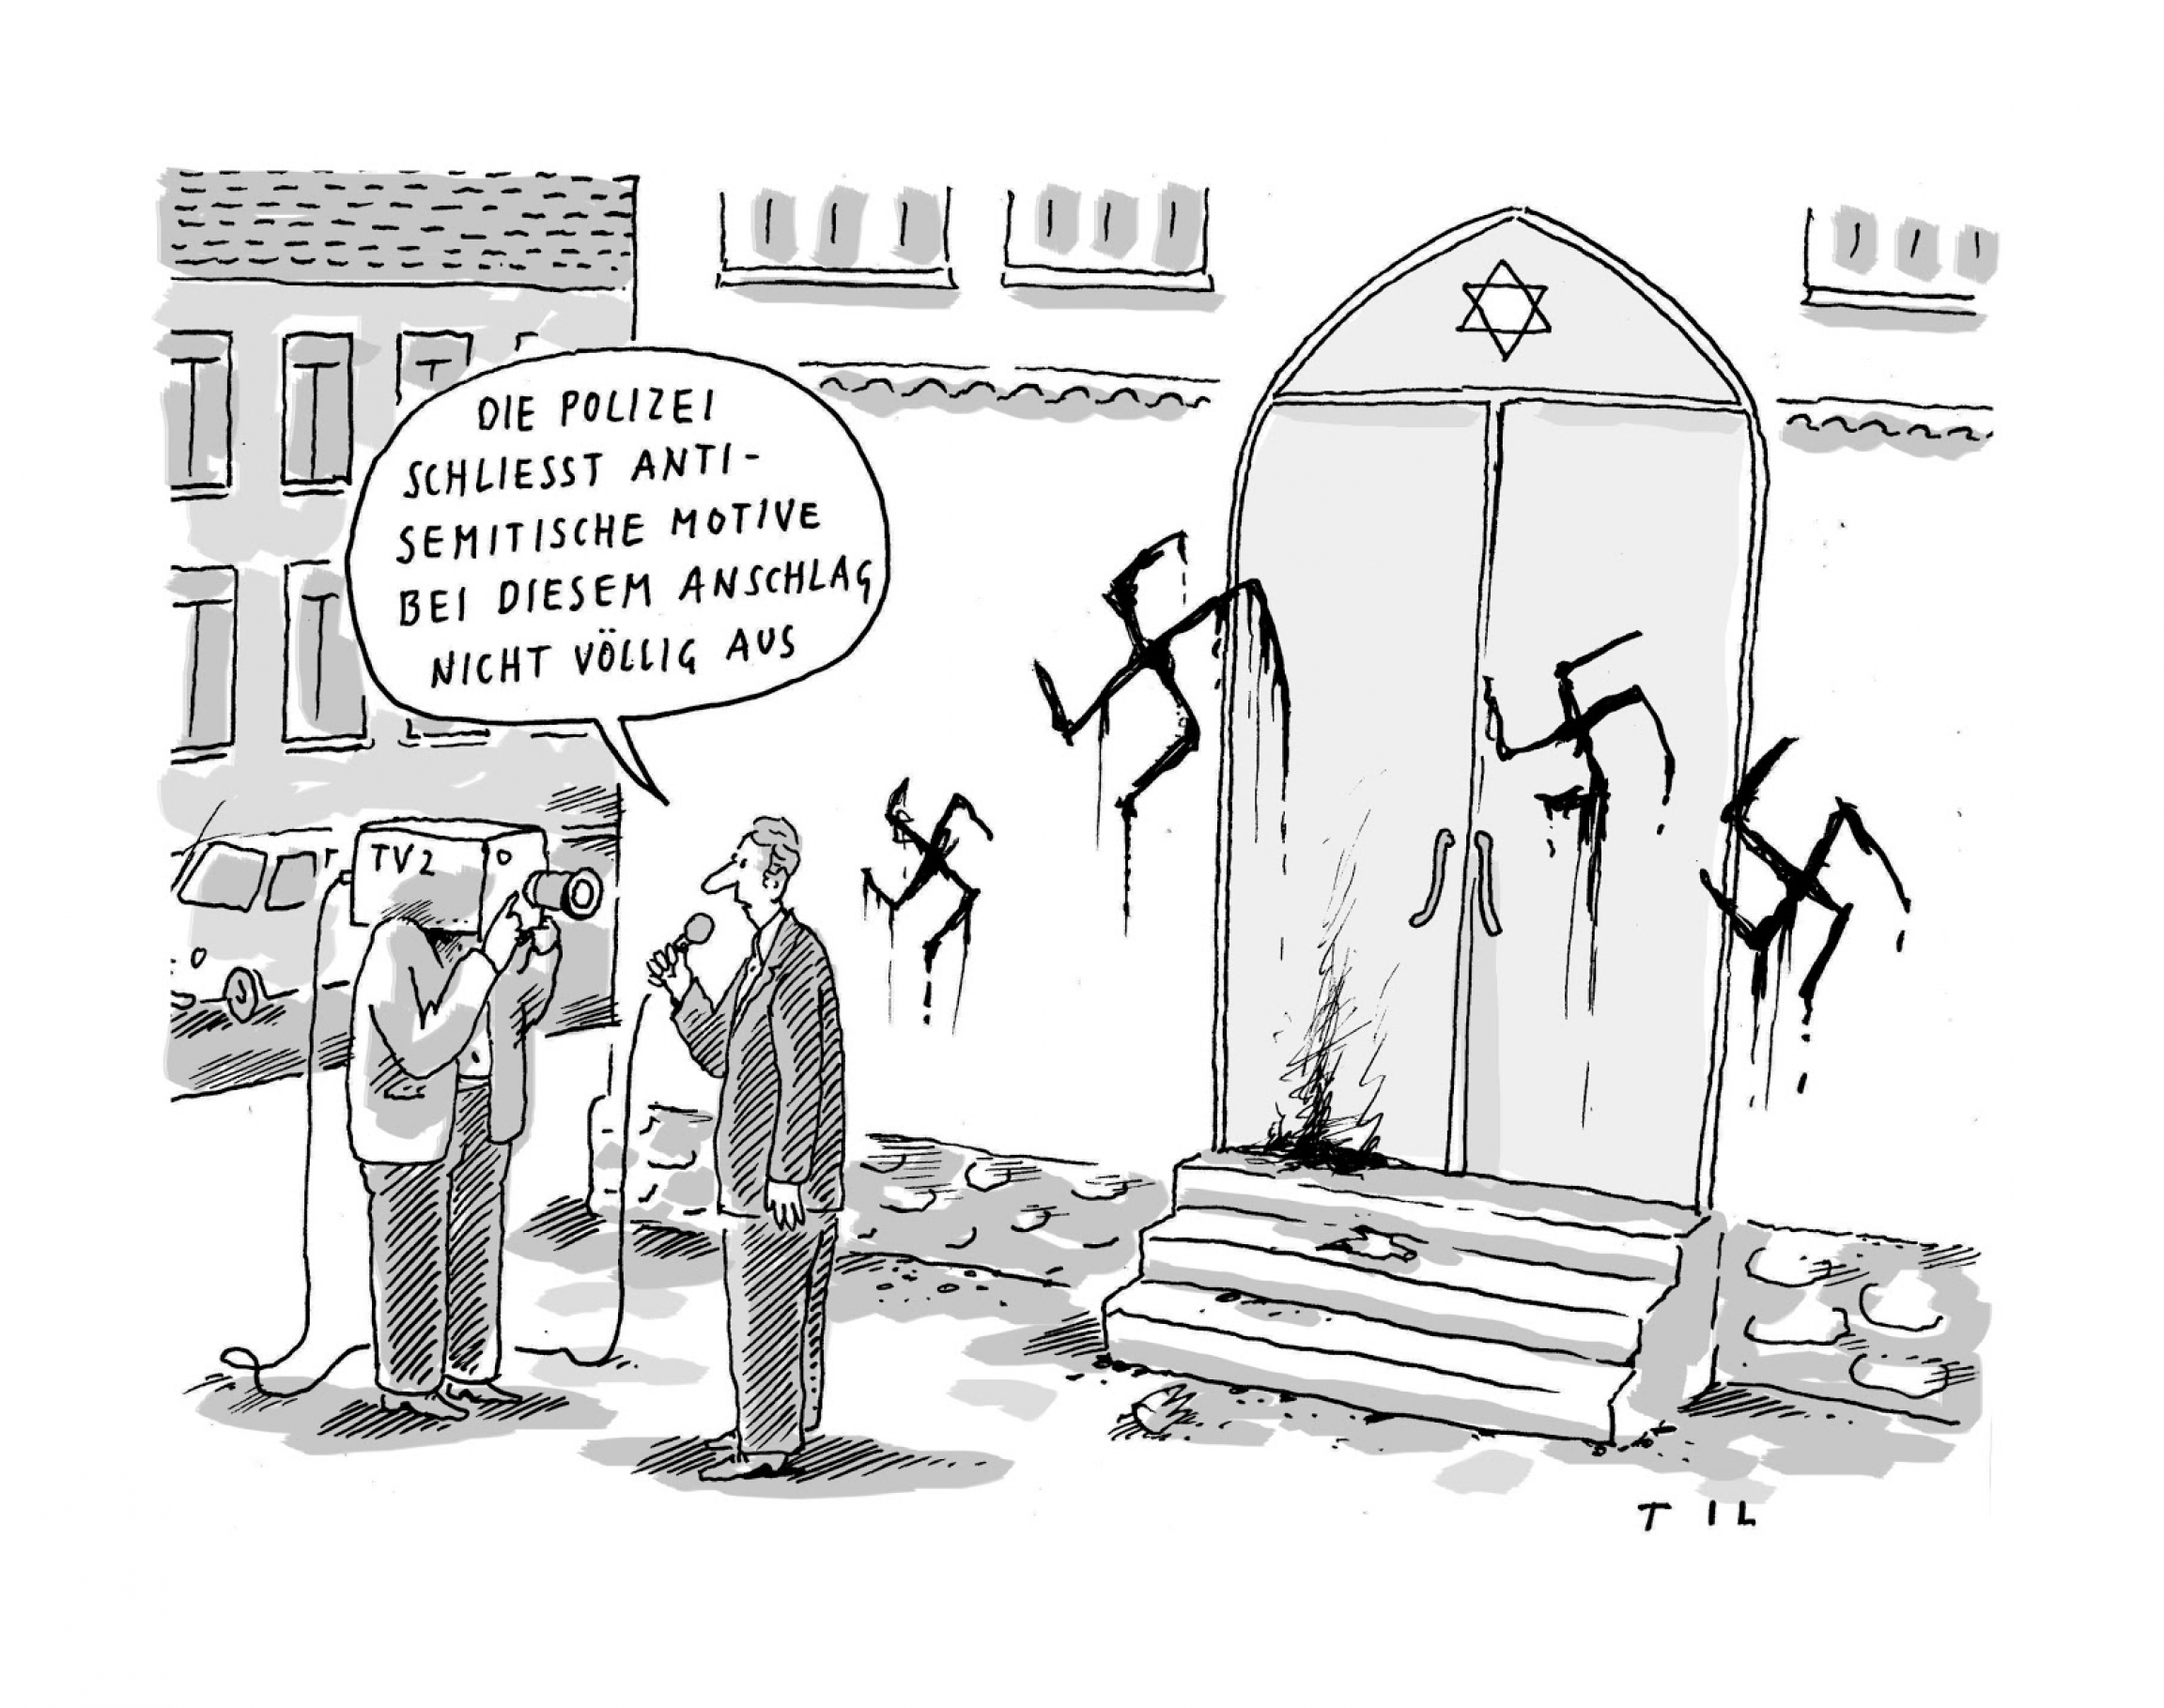 A black and white cartoon of four swastikas spray-painted on a synagogue with two people talking about who did it